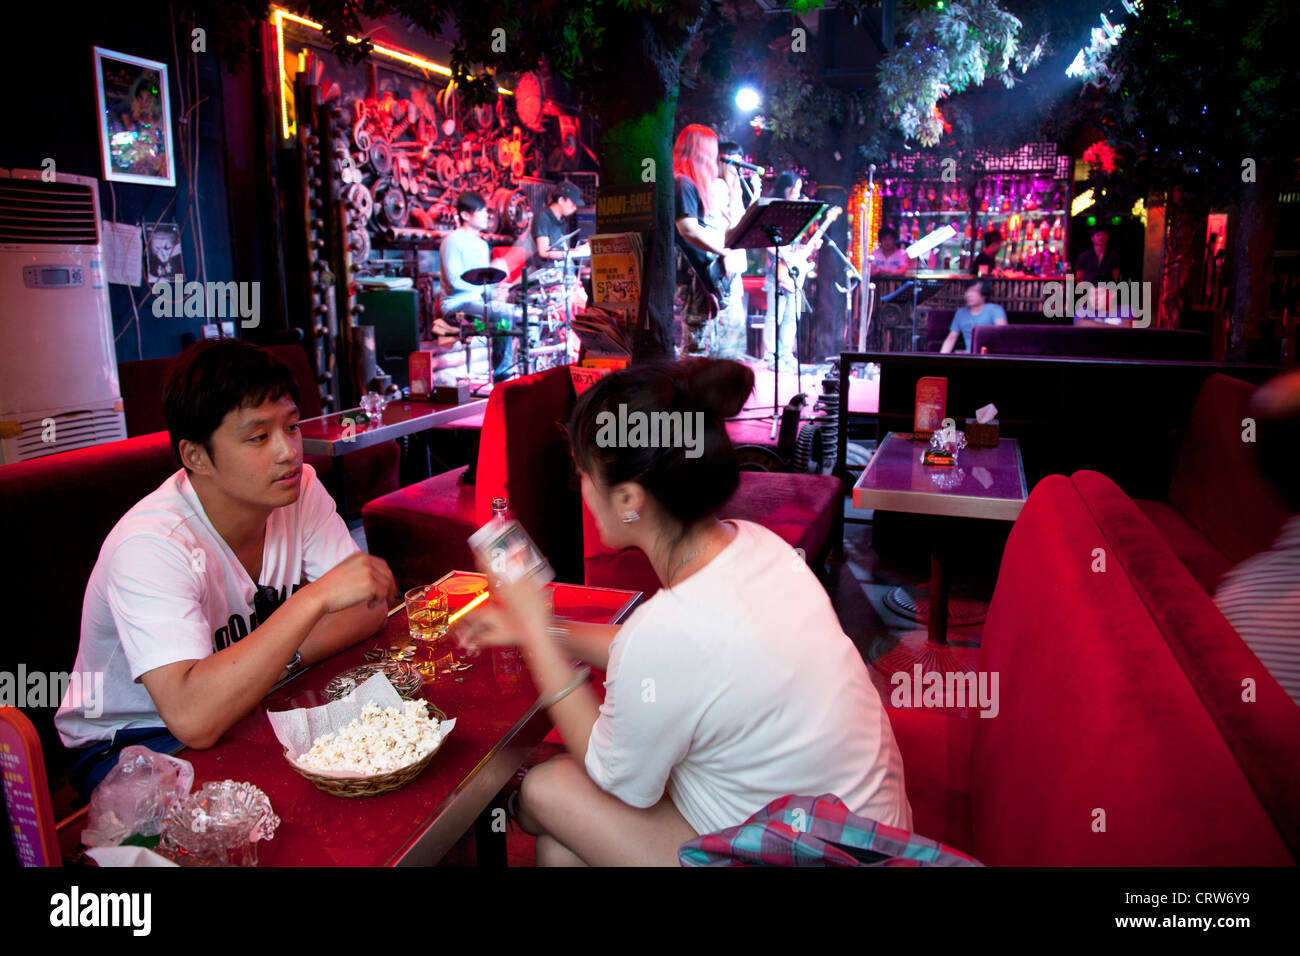 Couple at a bar in Shichahai, aka Houhai, Beijing's newly developed nightlife area, full of small bars. - Stock Image